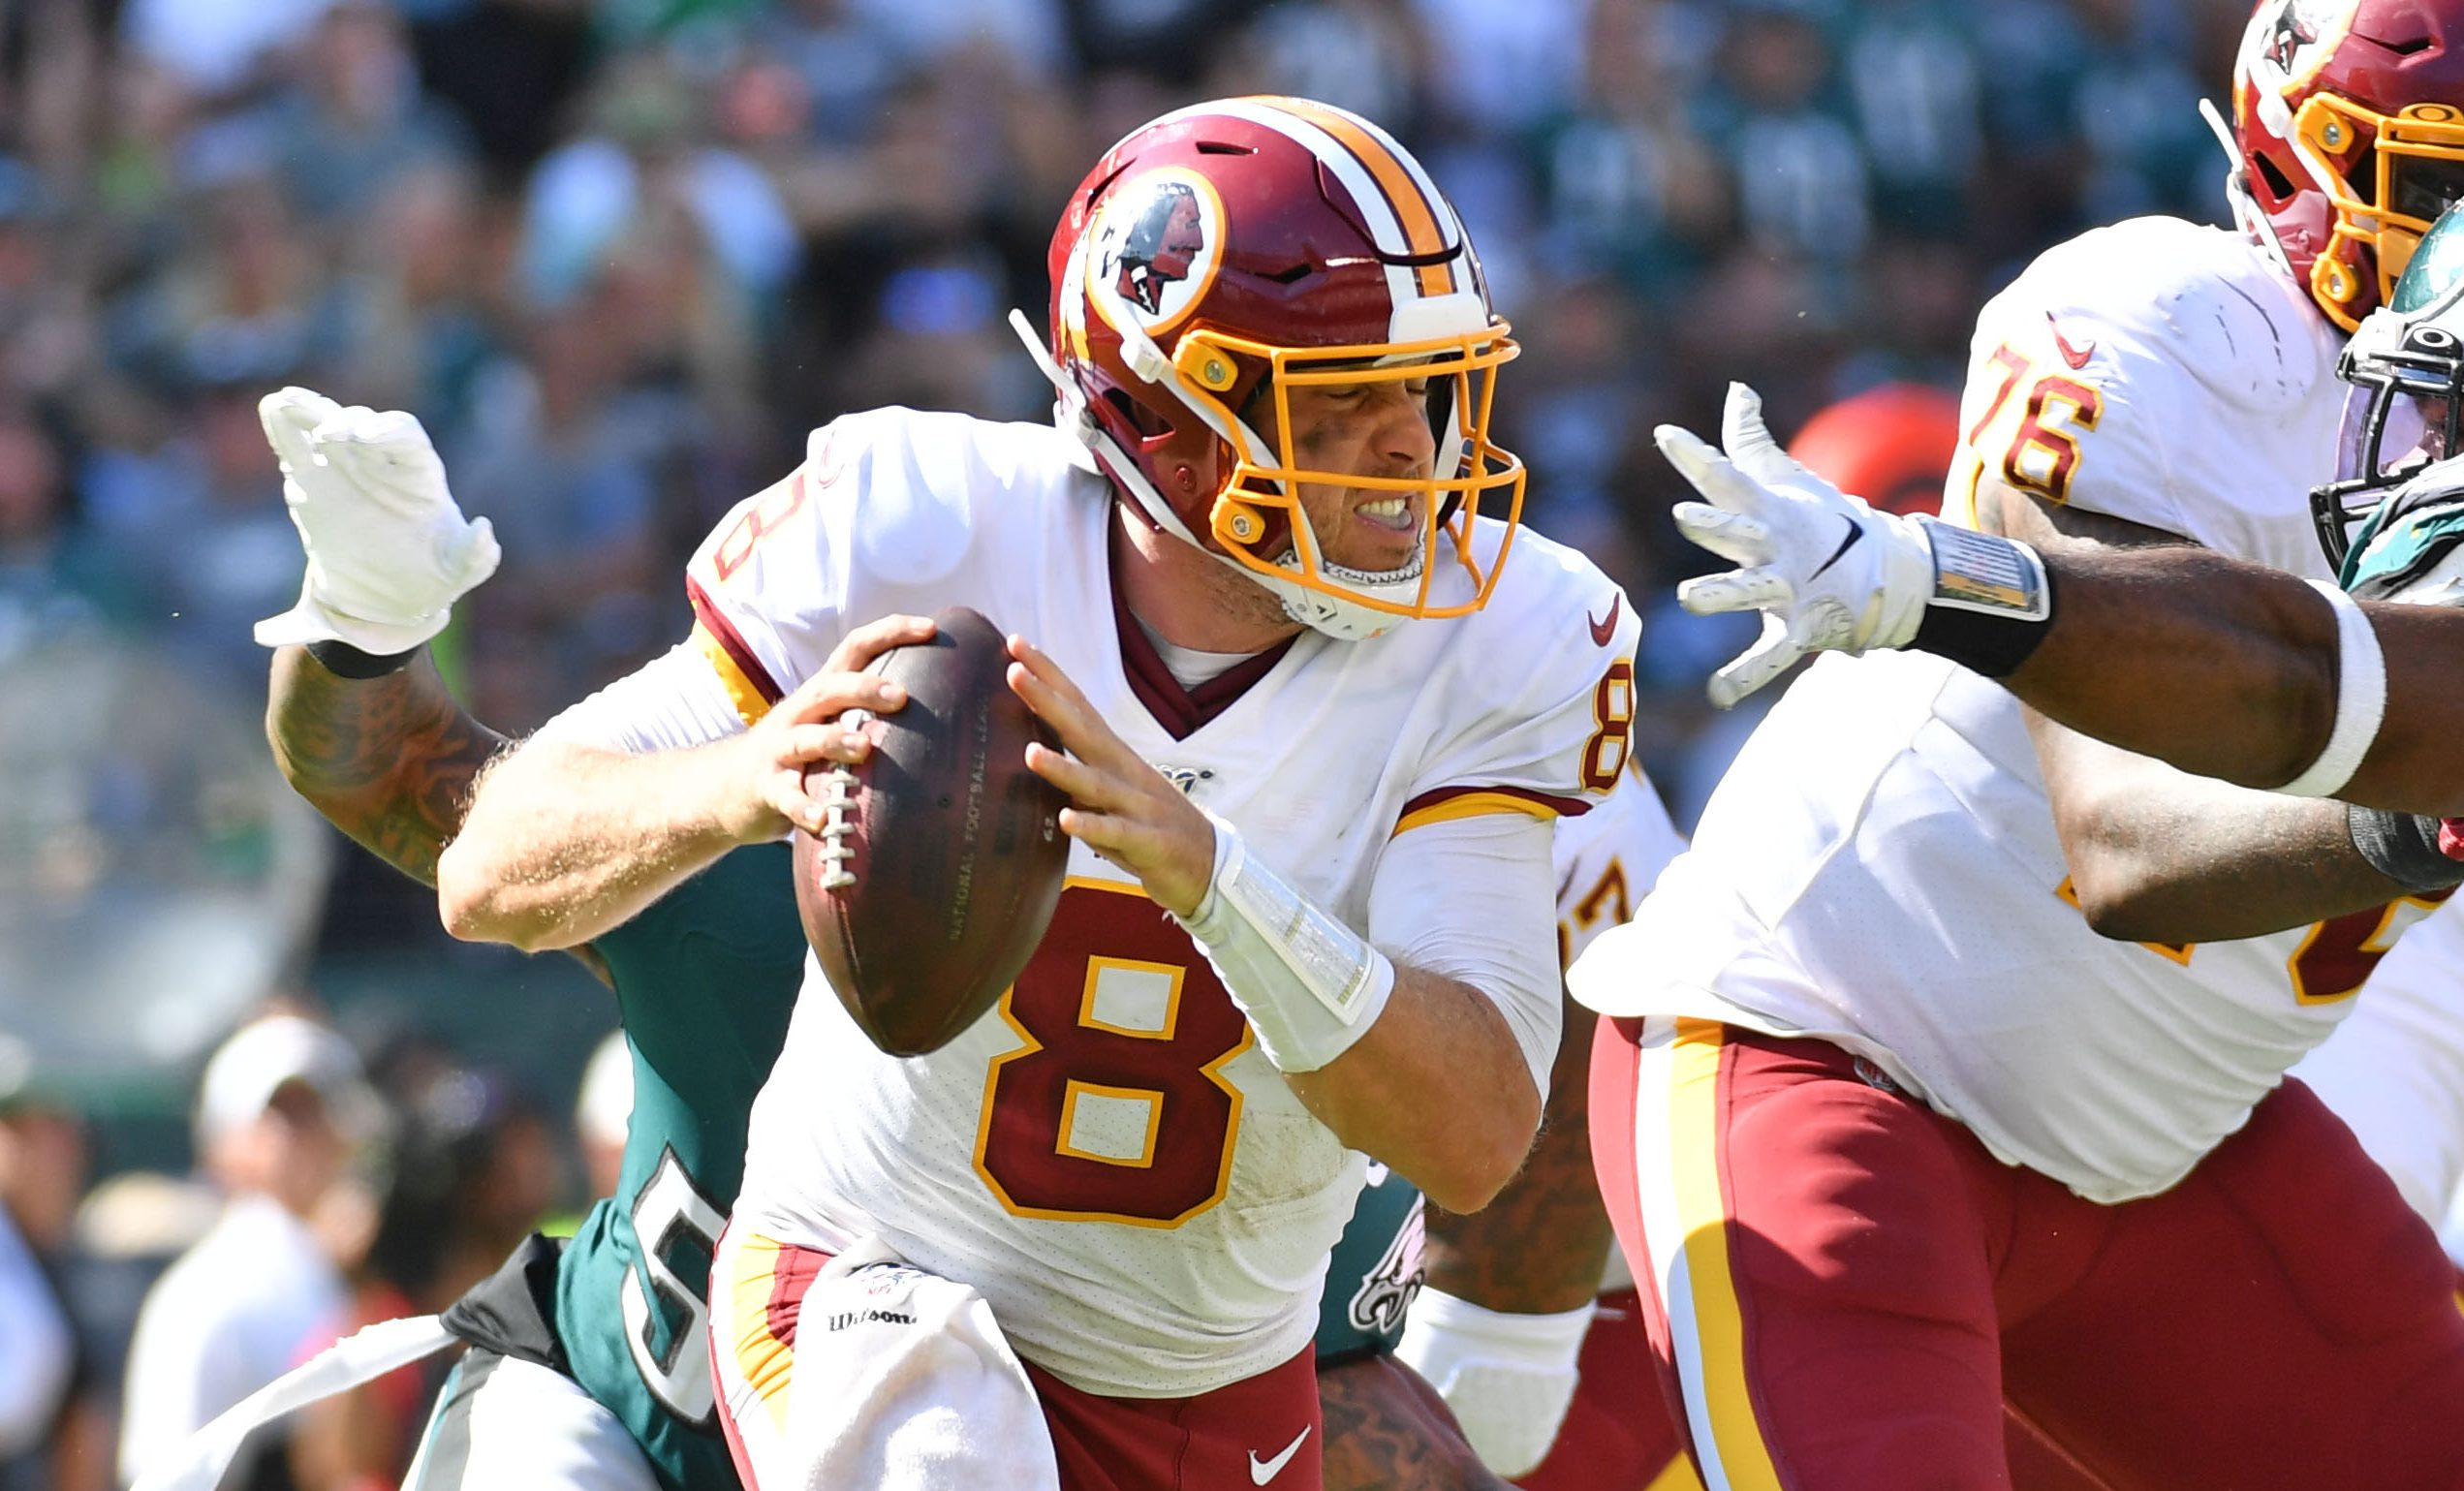 Cowboys redskins betting predictions today golf betting tournament matchups